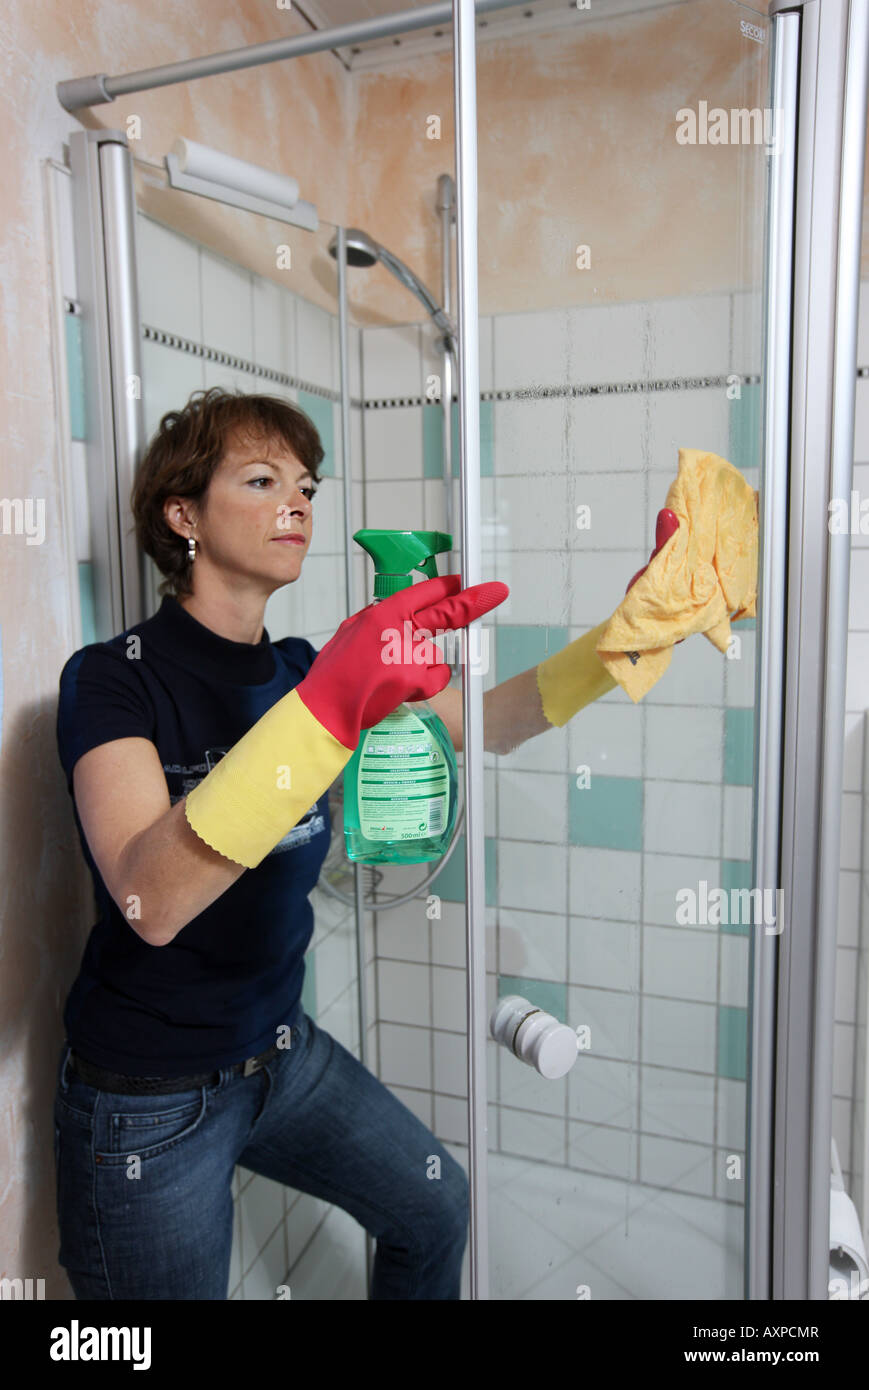 Household Woman is cleaning a bathroom - Stock Image